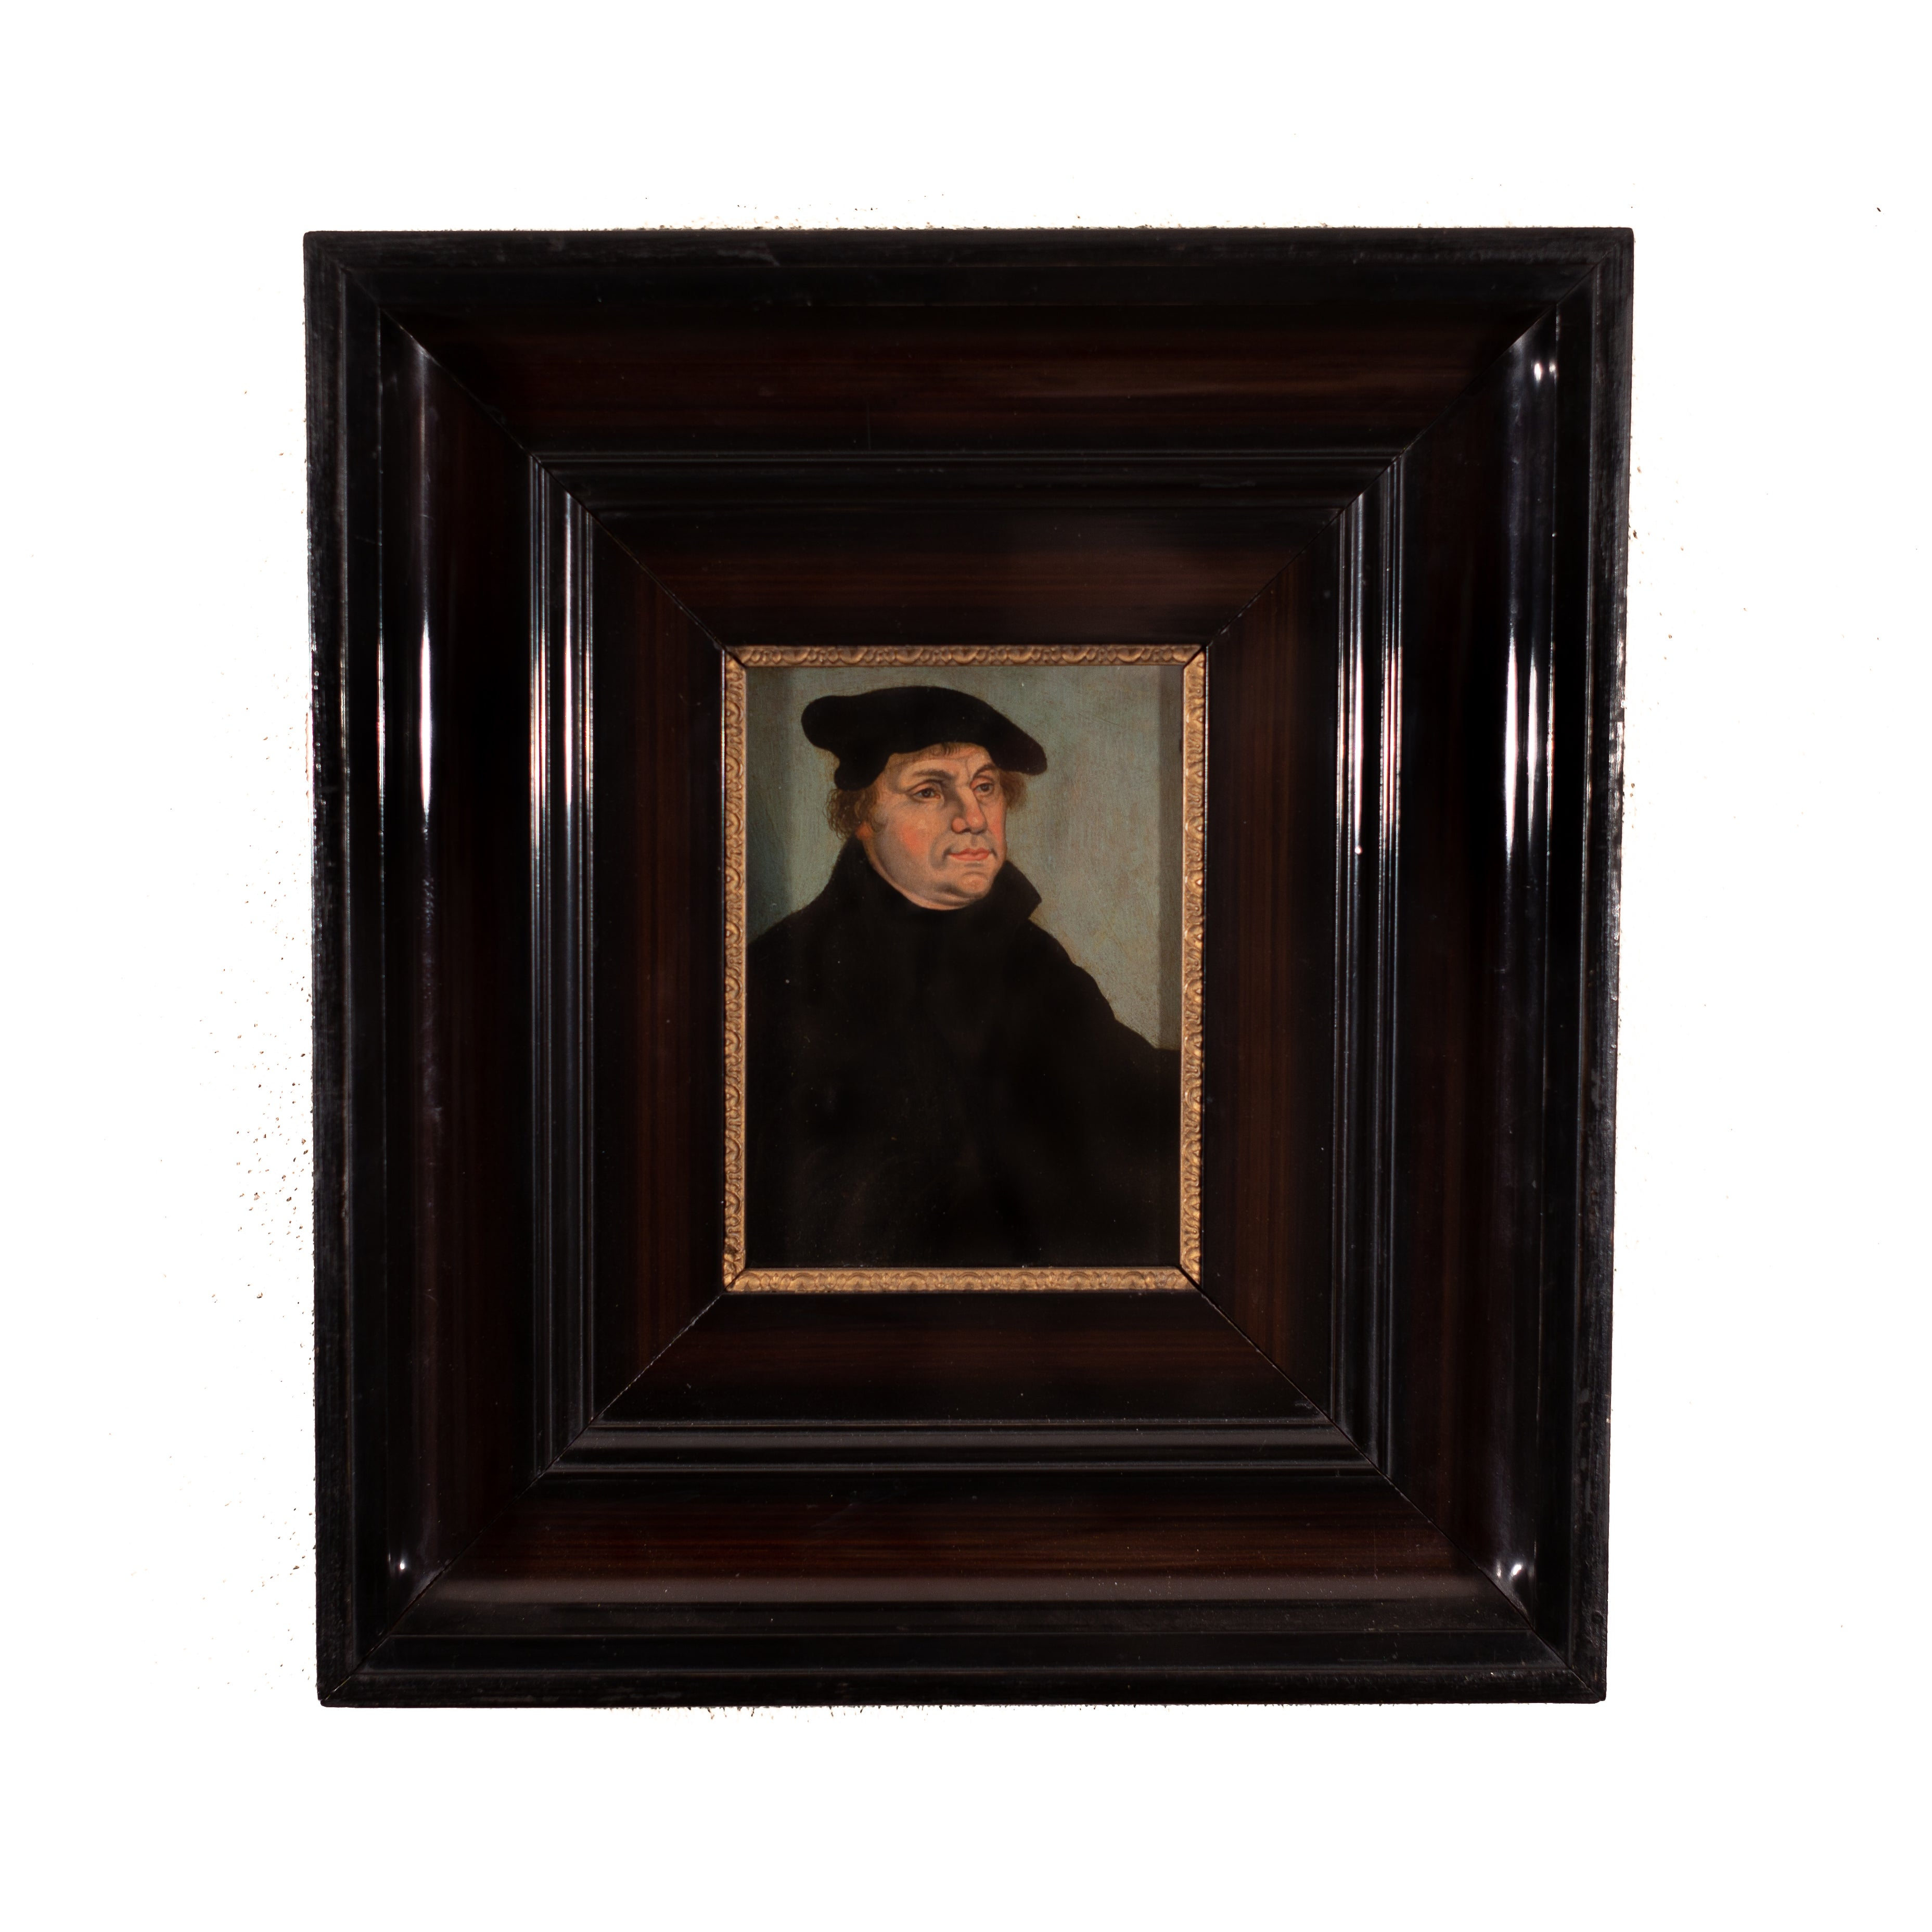 Portrait of Martin Luther by a Lucas Cranach the elder (follower), oil on panel